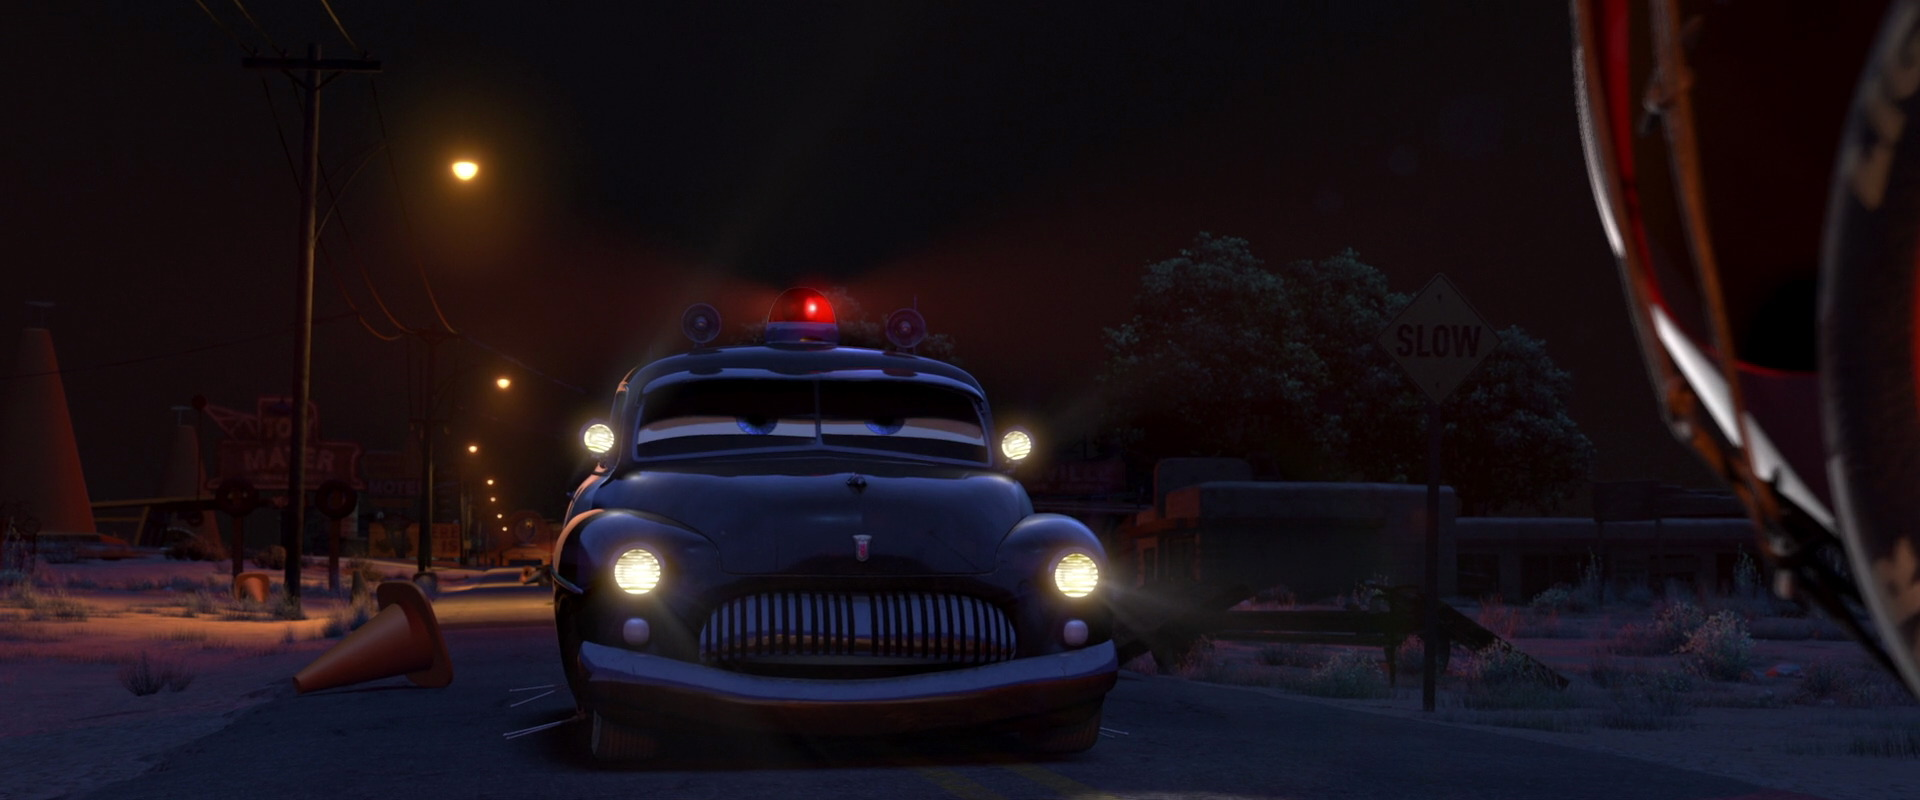 sheriff character from �cars� pixarplanetfr